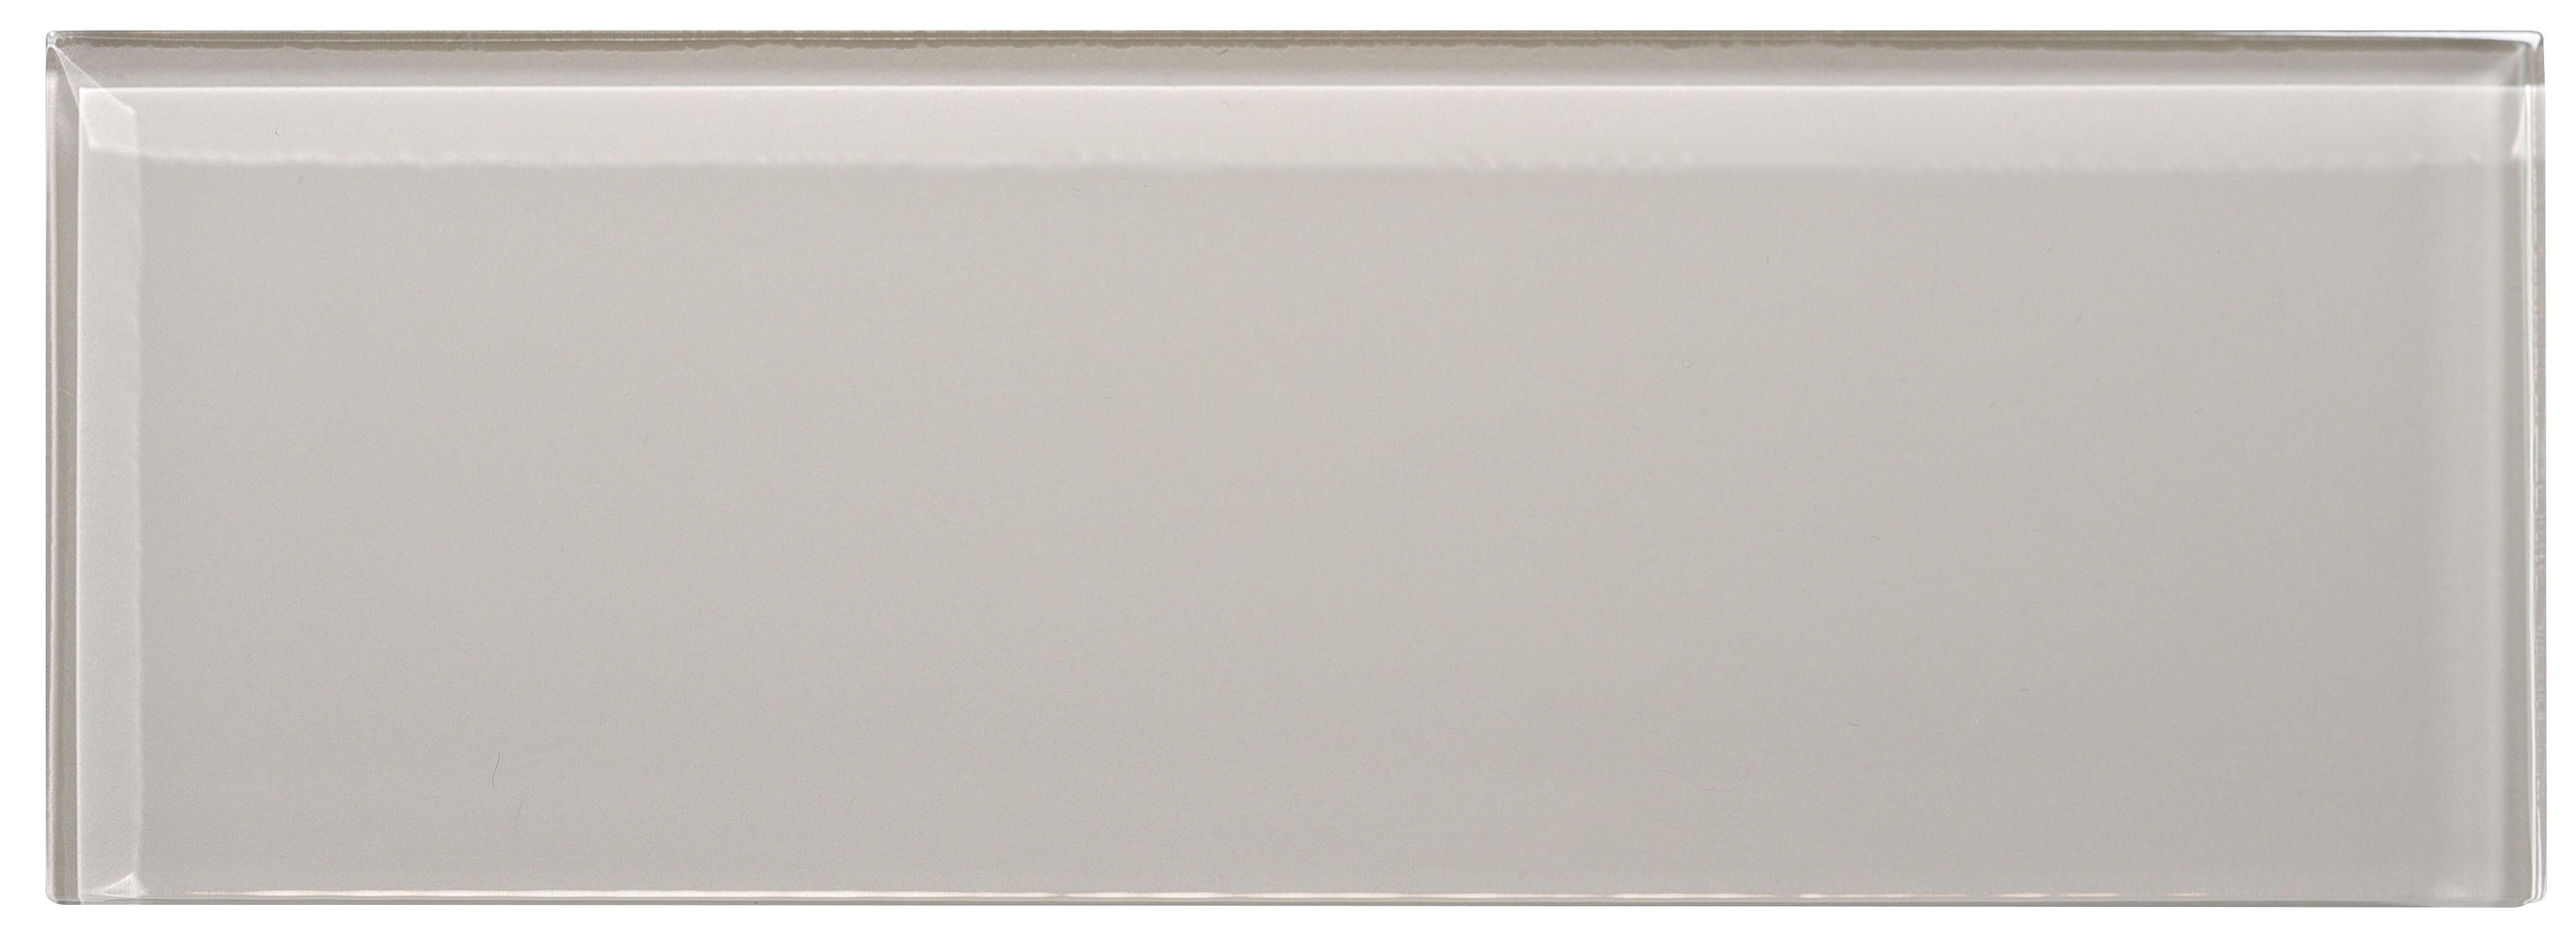 """Glass Subway Tile / 4 x 12 x 0.31 inches / Glossy Individual 4"""" X 12"""" Glass Subway Tile In Icy Gray 0"""